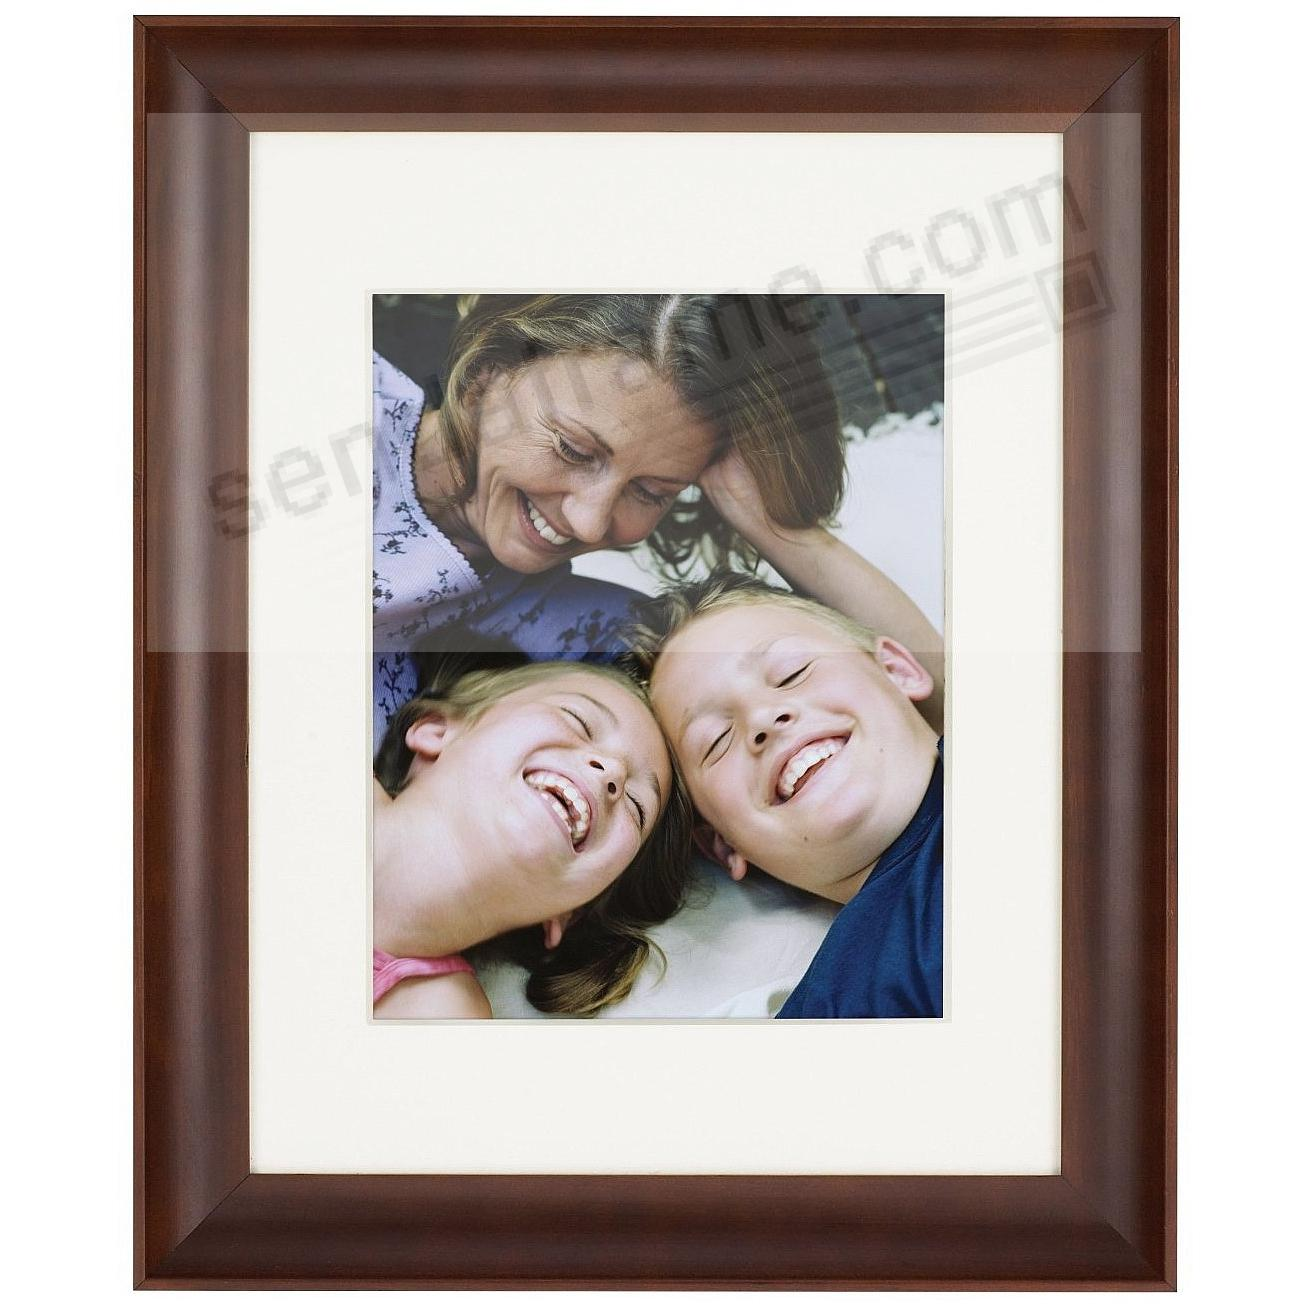 walnut family matted scoop profile wood frame 8x10 11x14 from